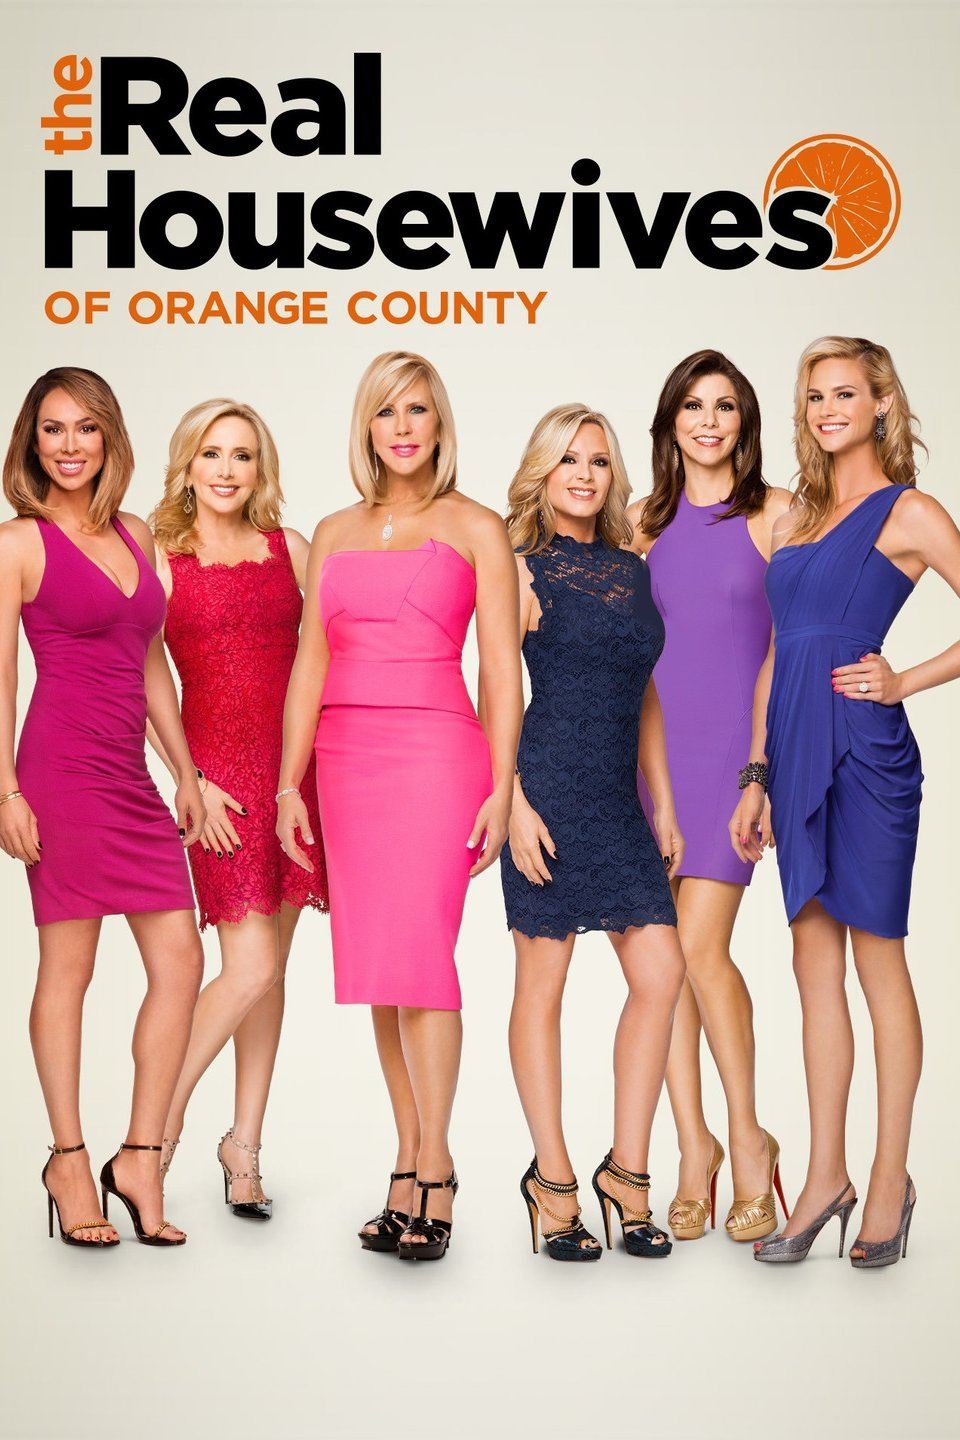 real housewives of orange county stream free